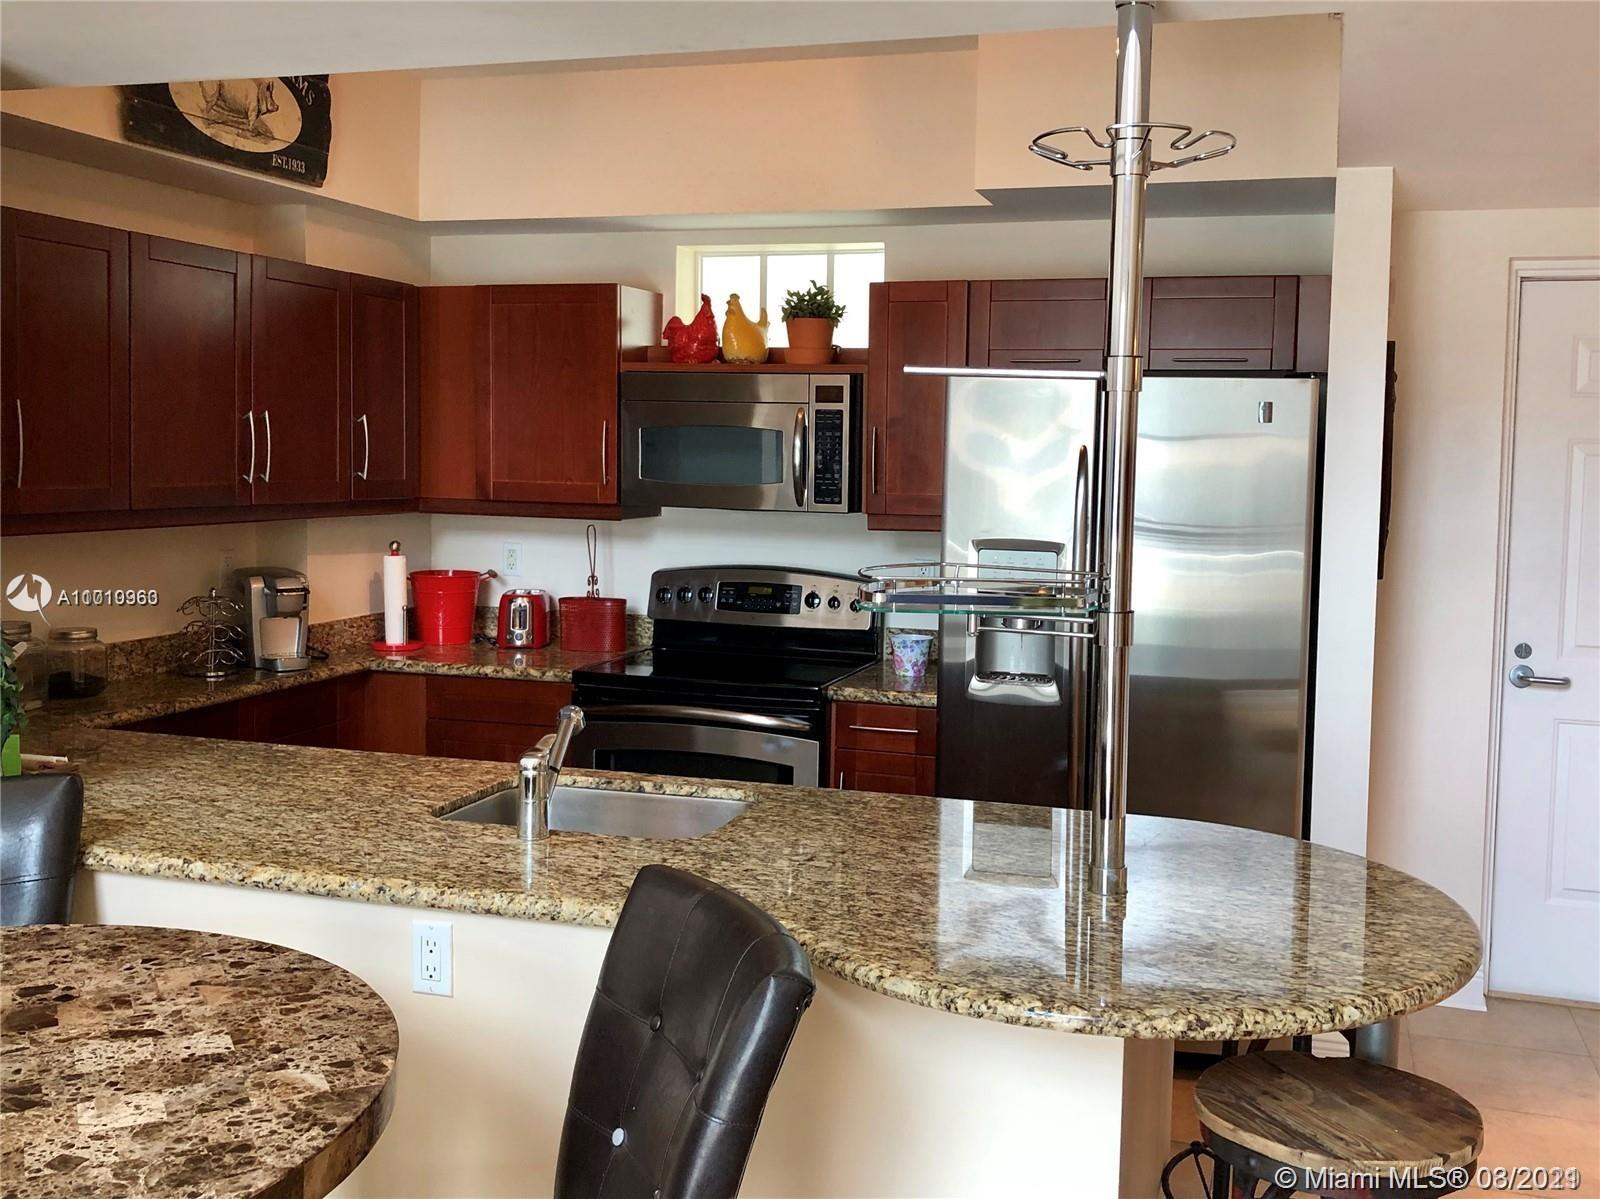 Downtown Dadeland Building A #A518 - 7266 SW 88th St #A518, Miami, FL 33156